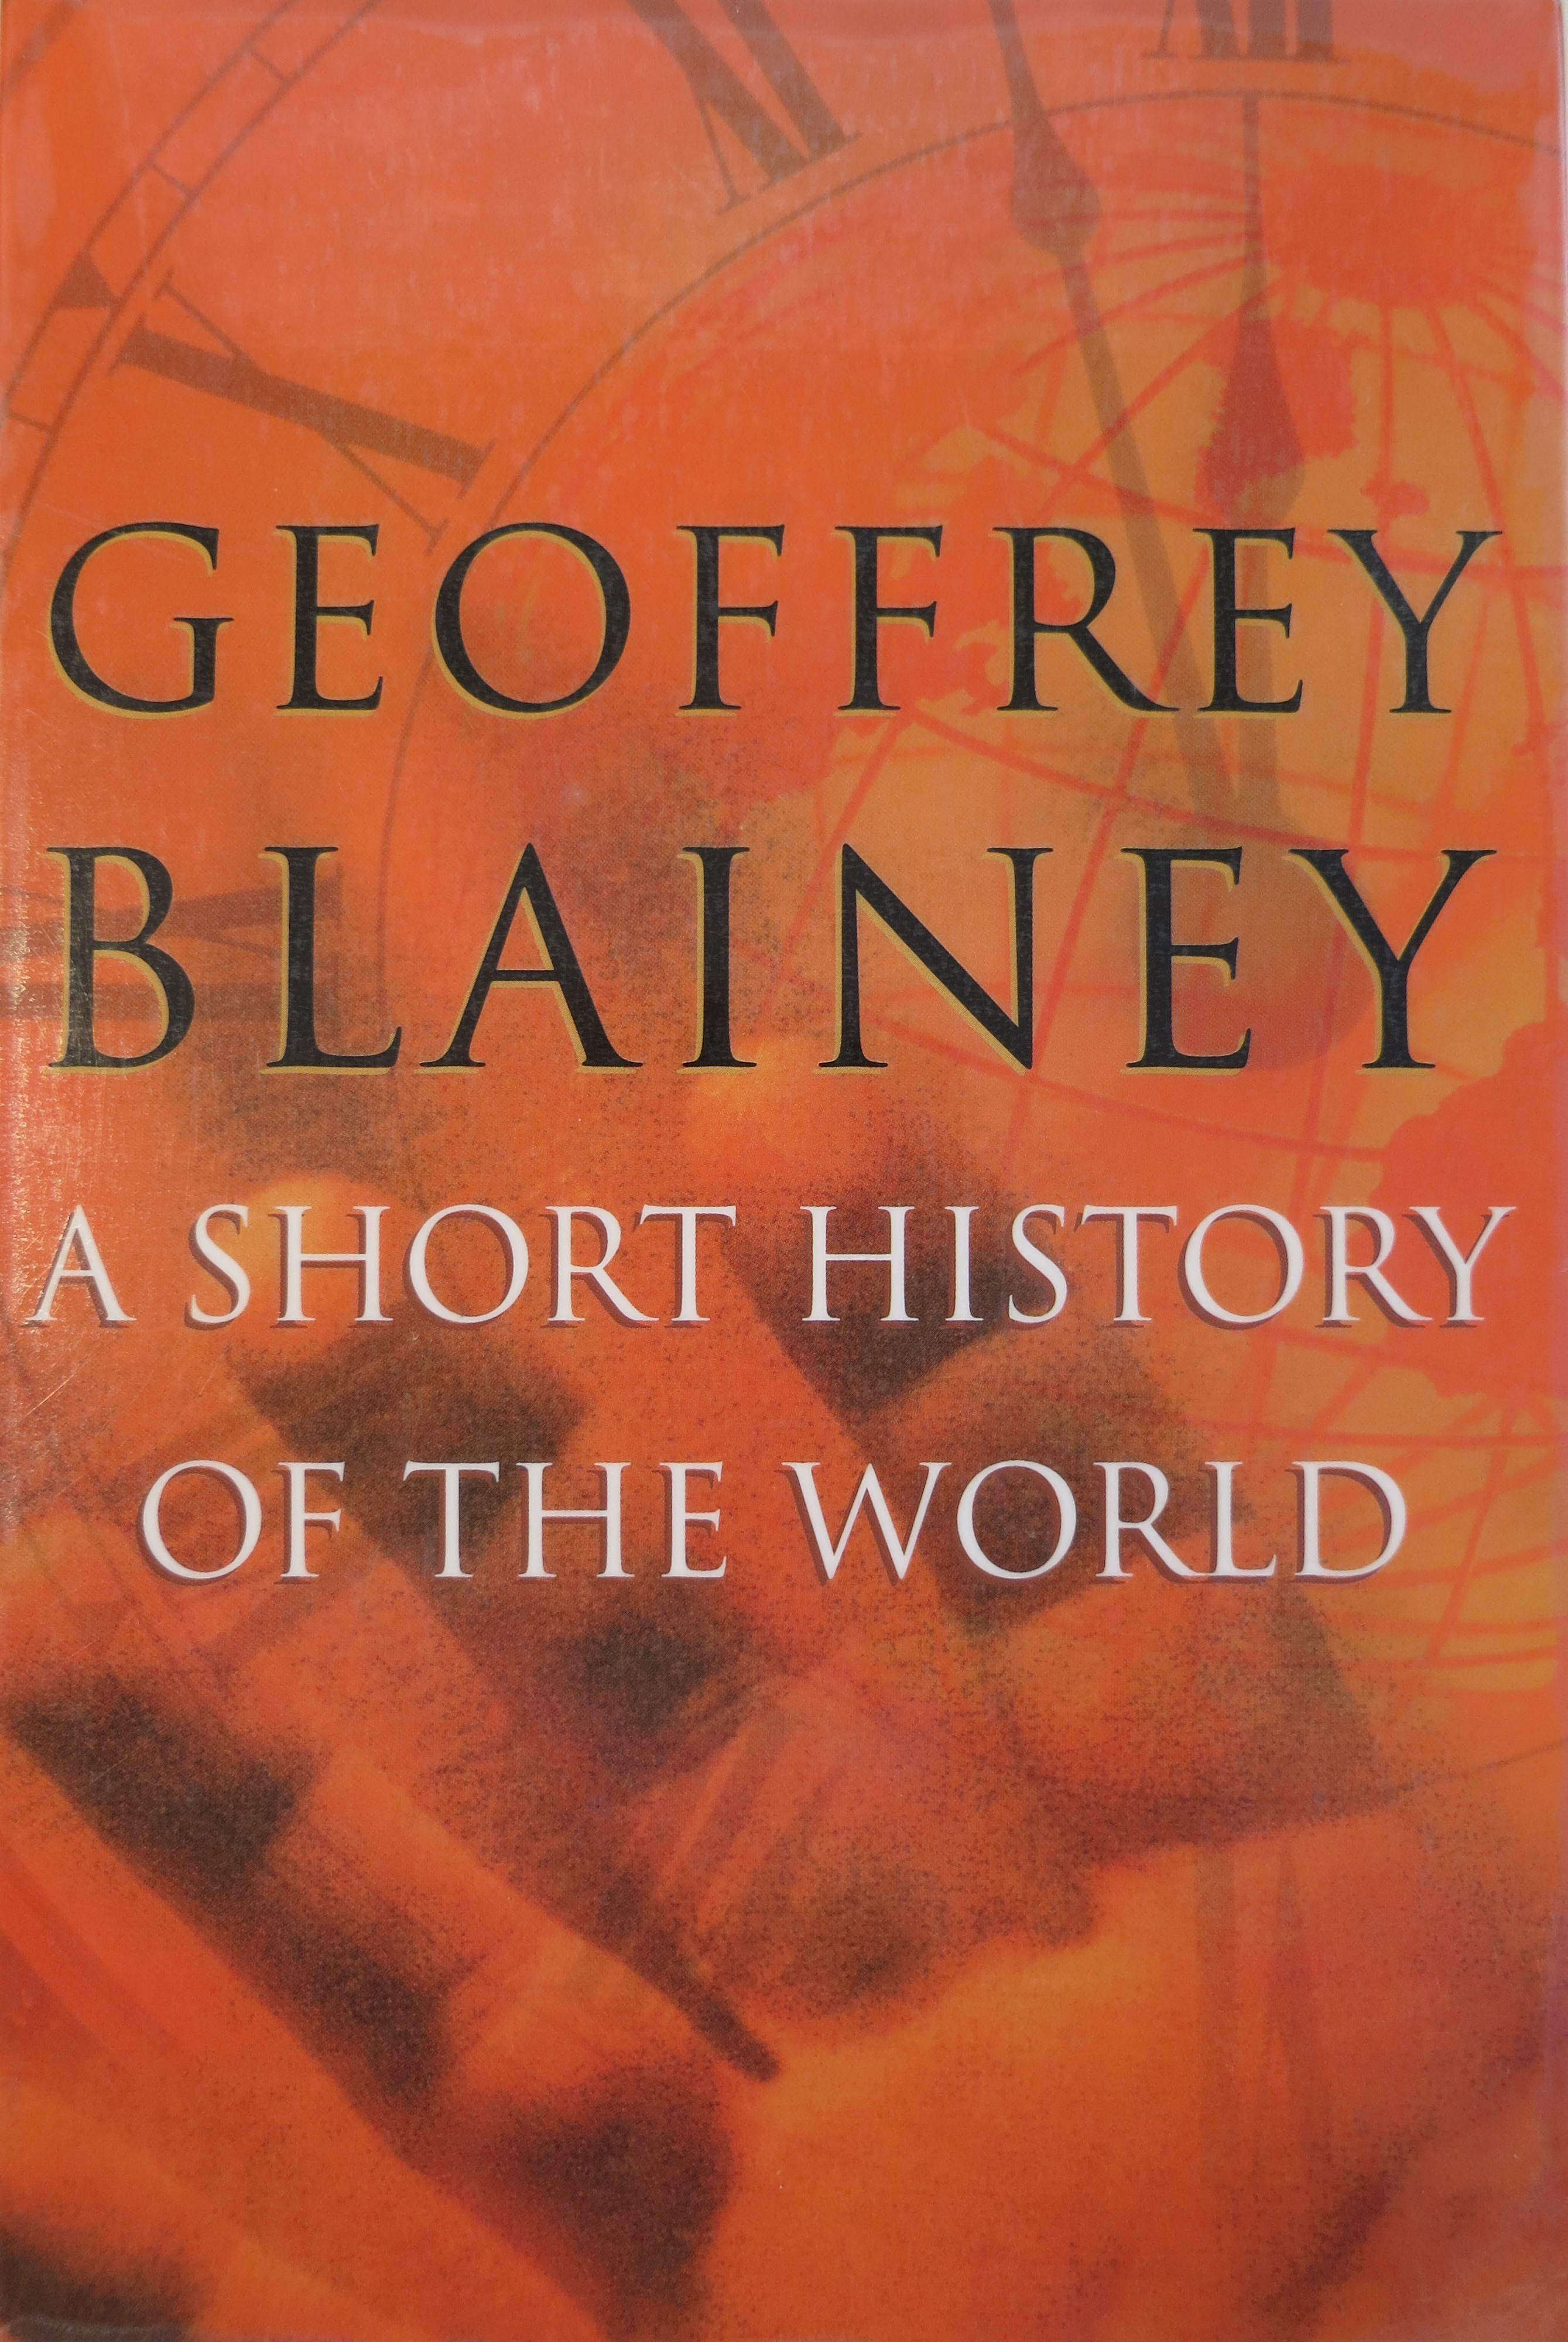 A Shorter History of the World